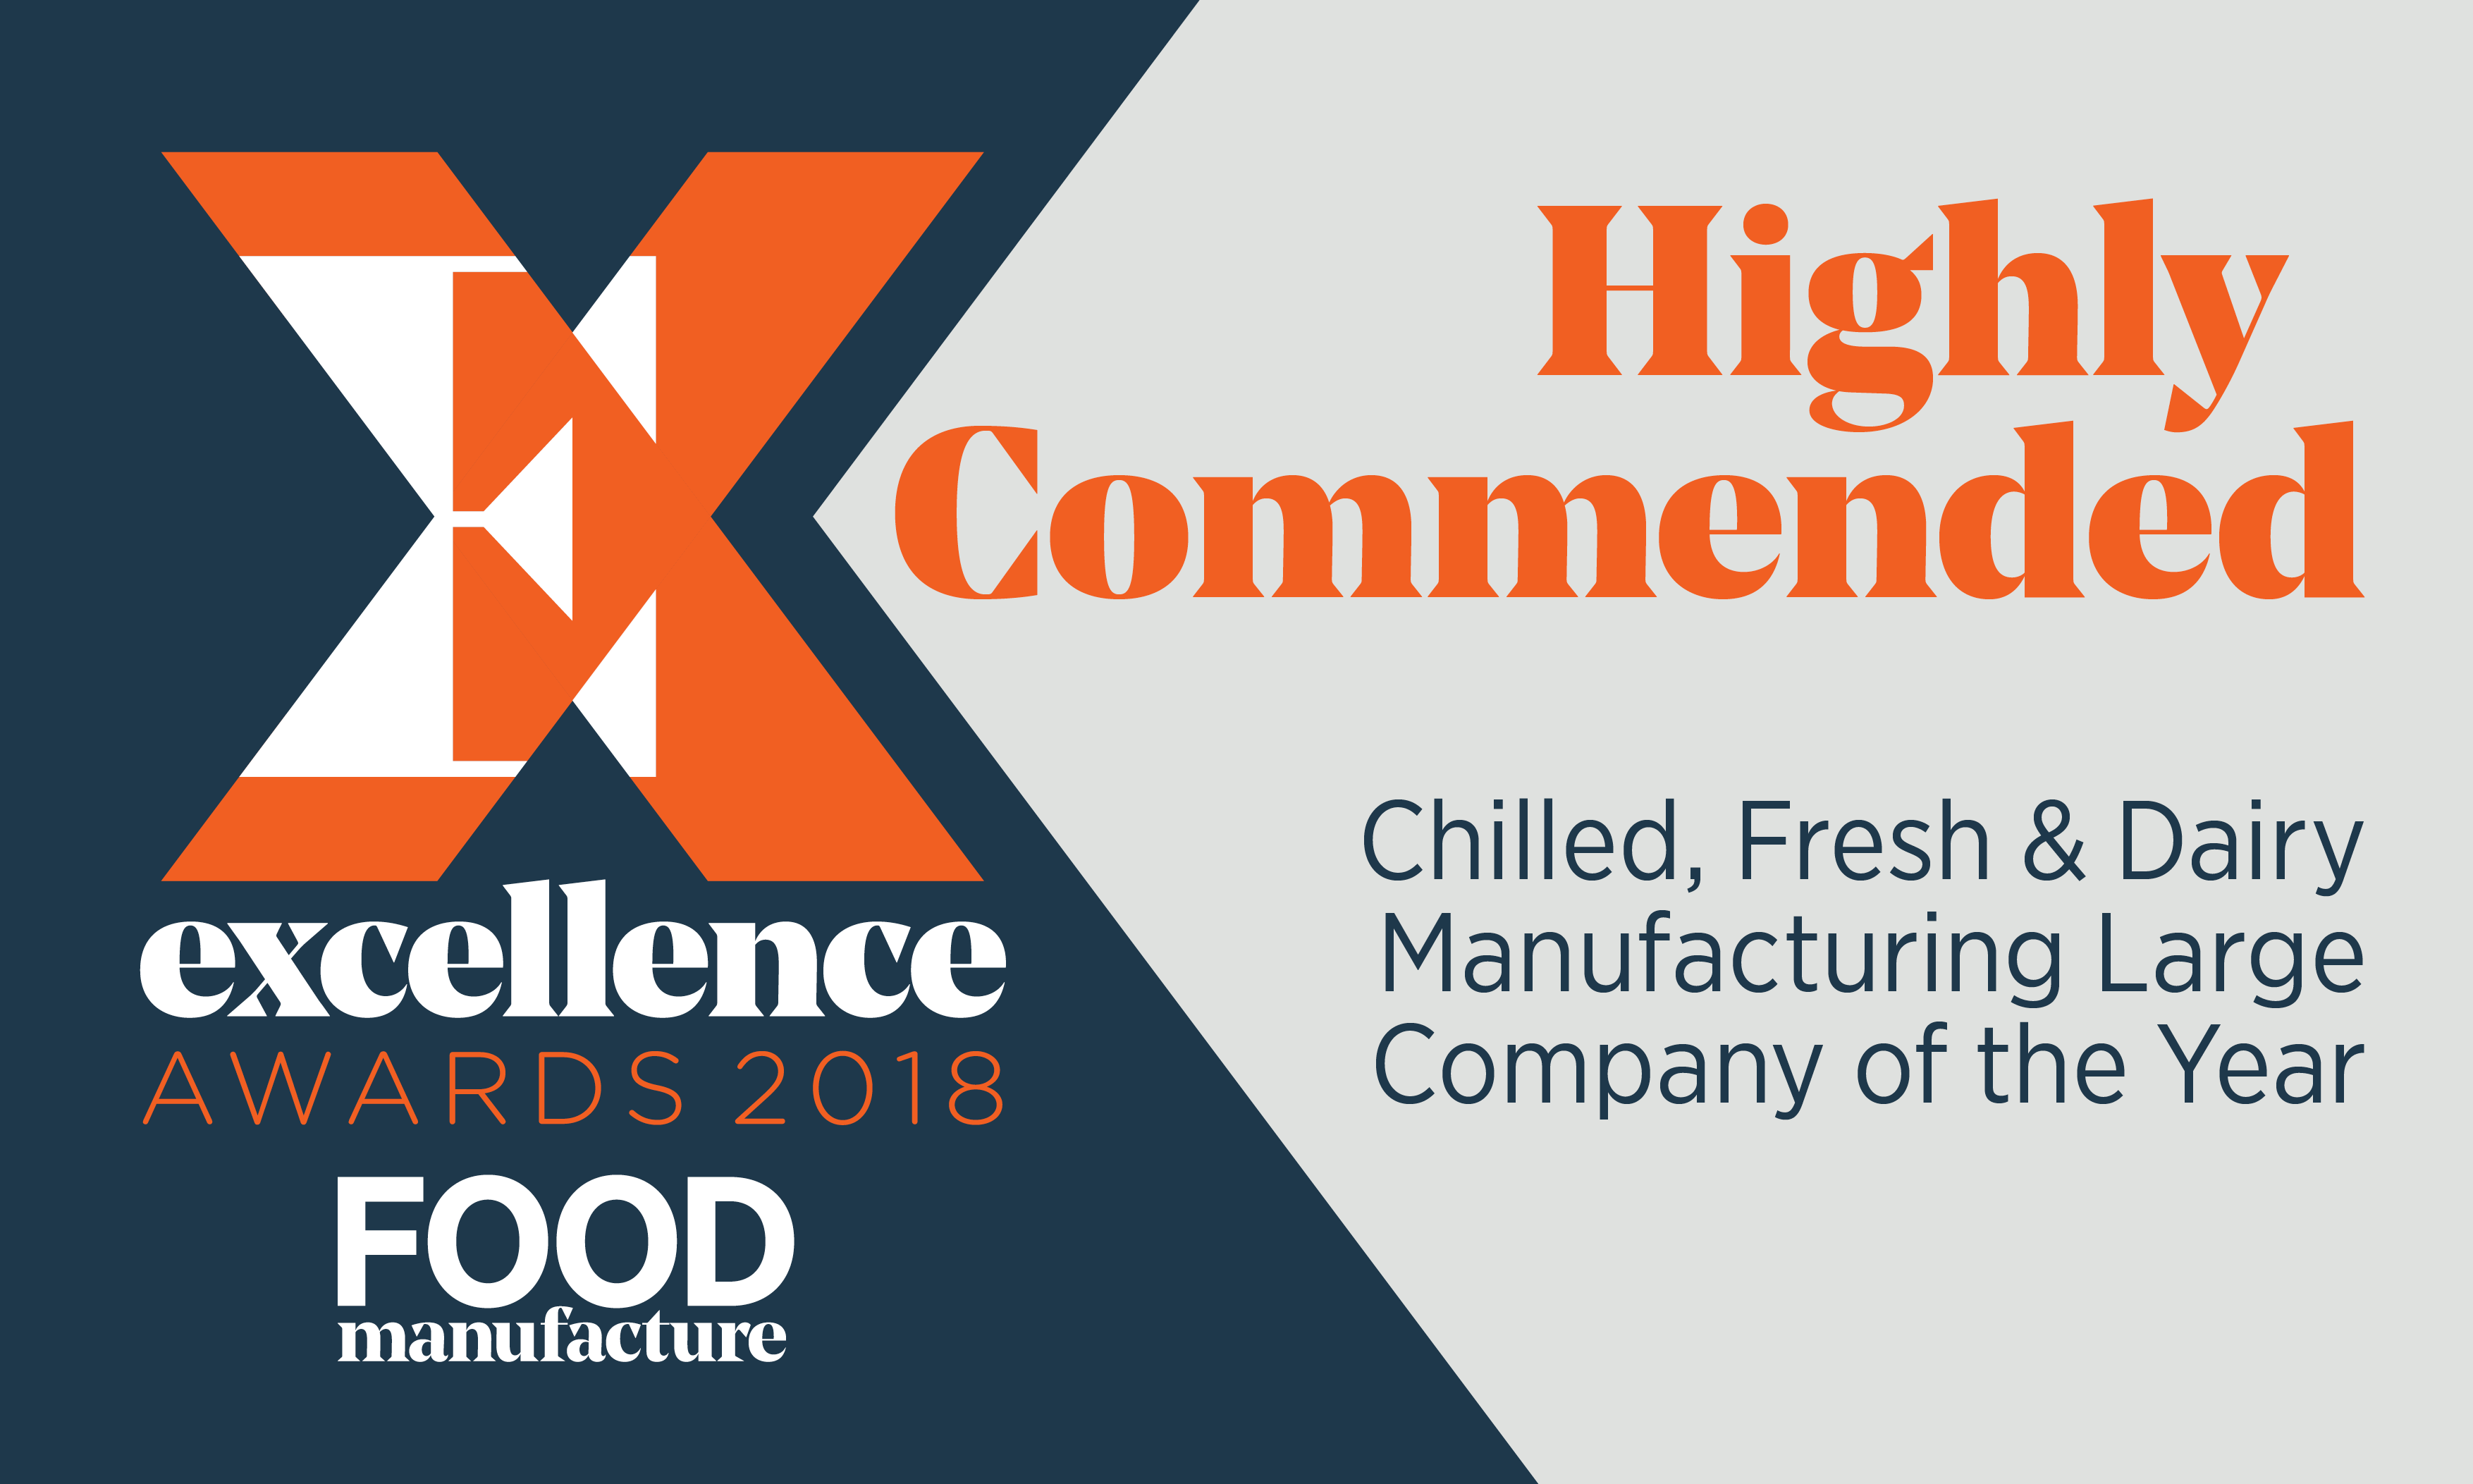 Highly Commended at Food Manufacturing Excellence Awards